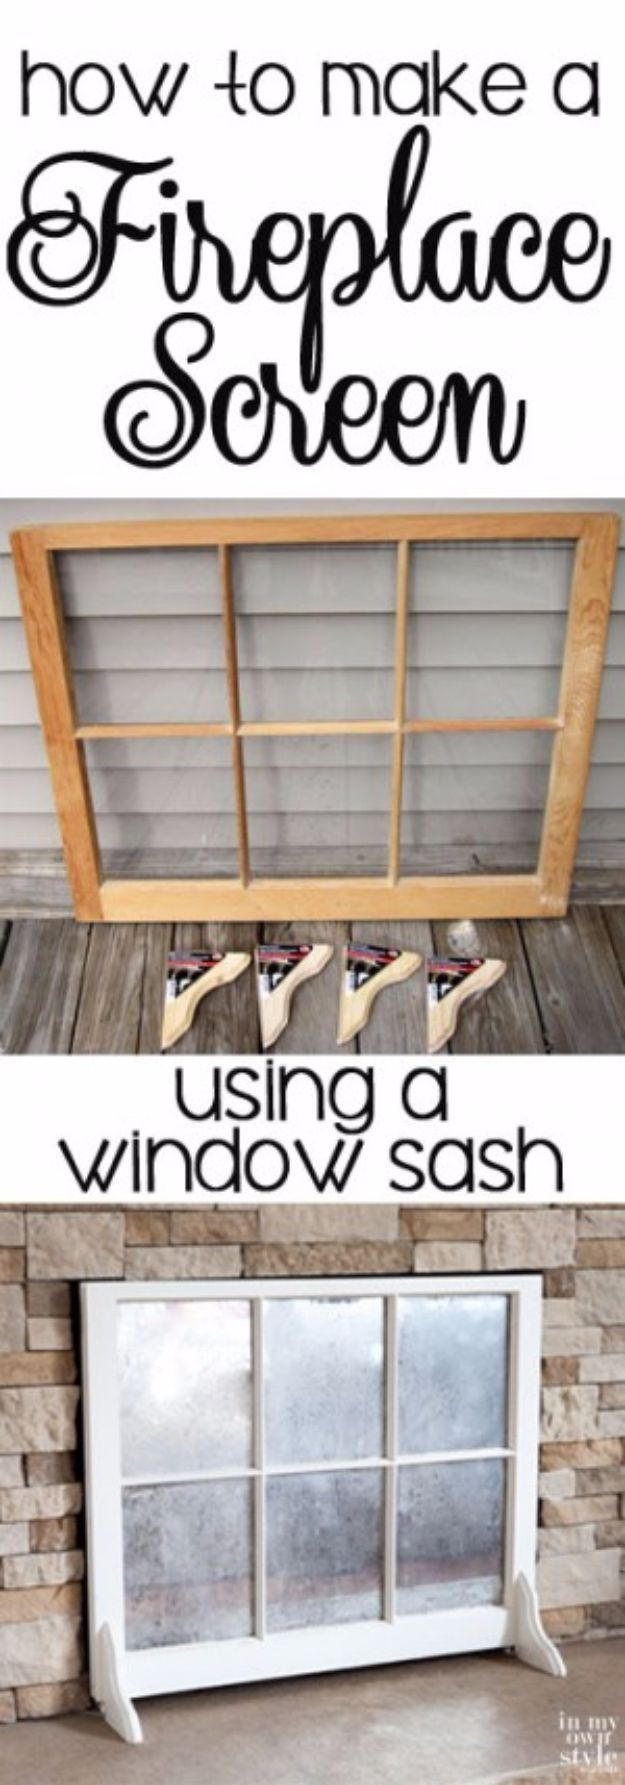 DIY Ideas With Old Windows - Fireplace Screen Using Old Window - Rustic Farmhouse Decor Tutorials and Projects Made With An Old Window - Easy Vintage Shelving, Coffee Table, Towel Hook, Wall Art, Picture Frames and Home Decor for Kitchen, Living Room and Bathroom - Creative Country Crafts, Seating, Furniture, Patio Decor and Rustic Wall Art and Accessories to Make and Sell http://diyjoy.com/diy-projects-old-windows